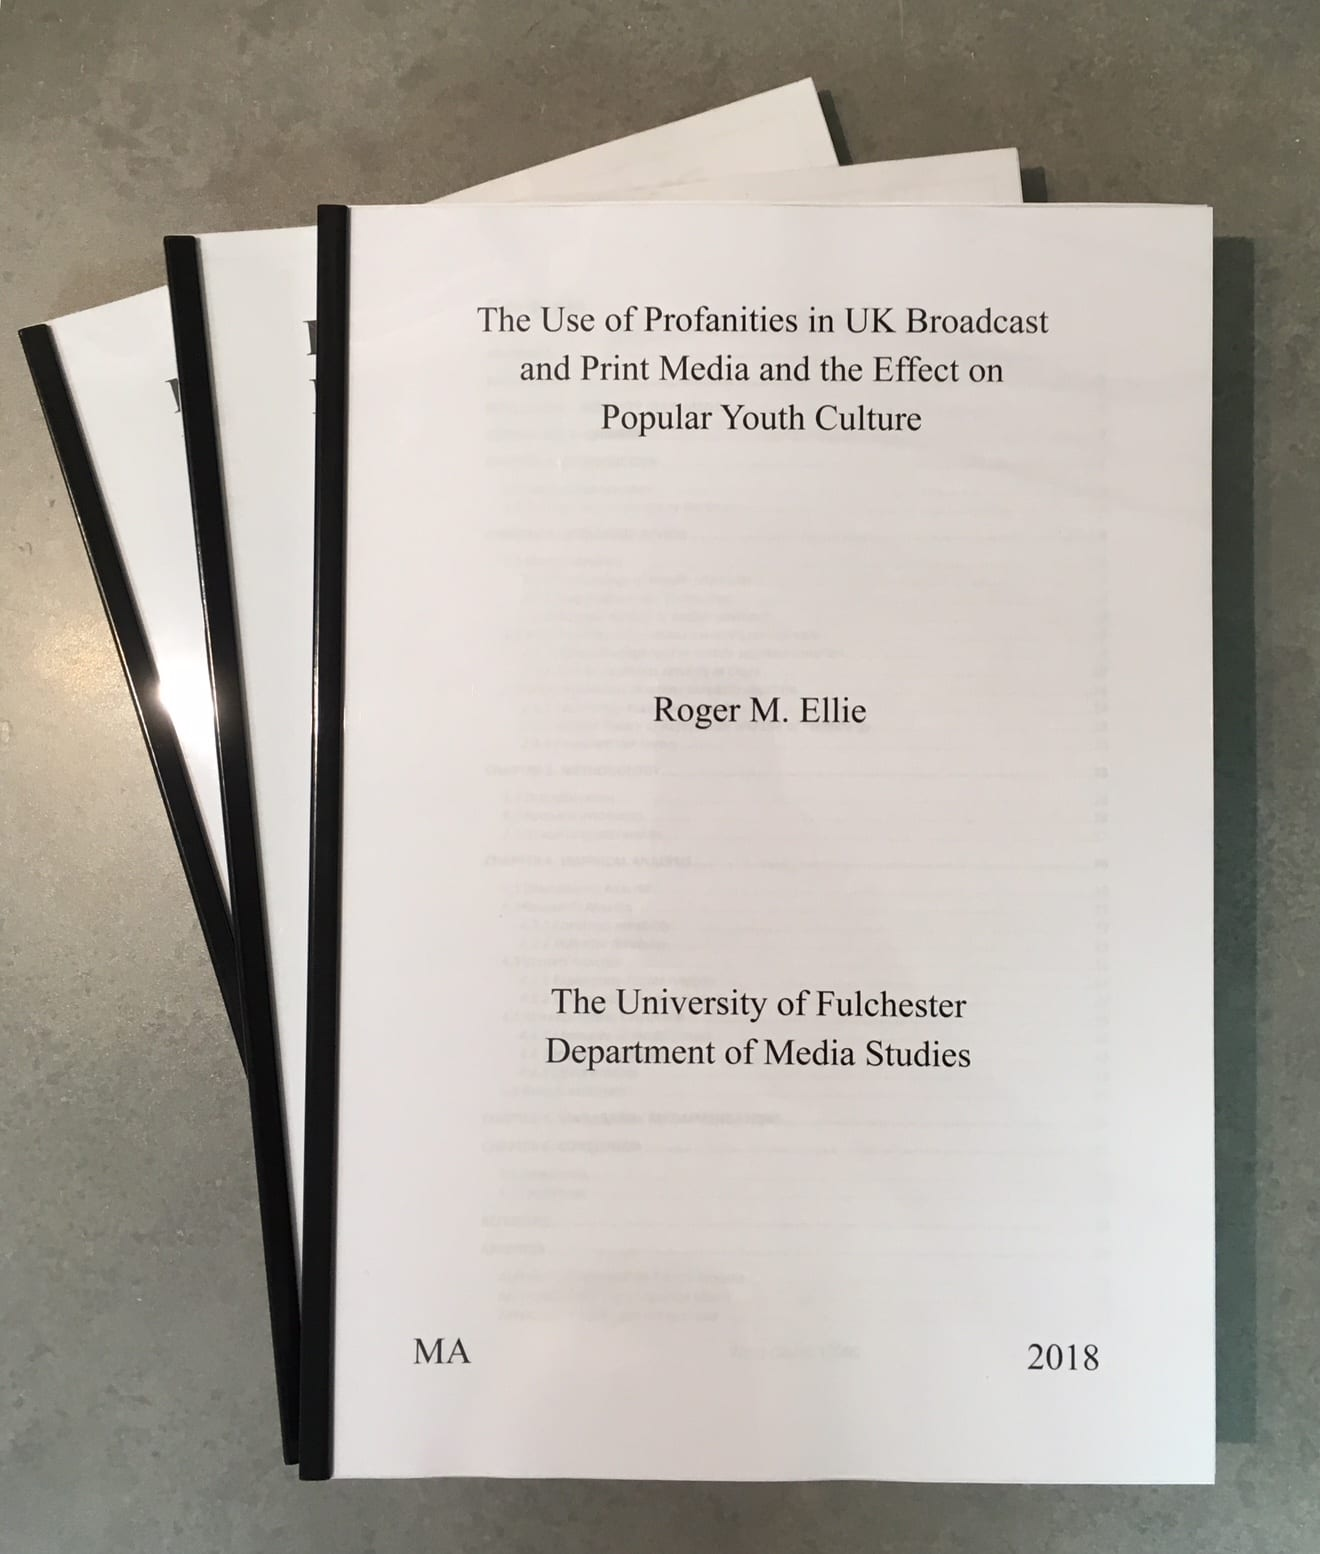 Completed phd thesis